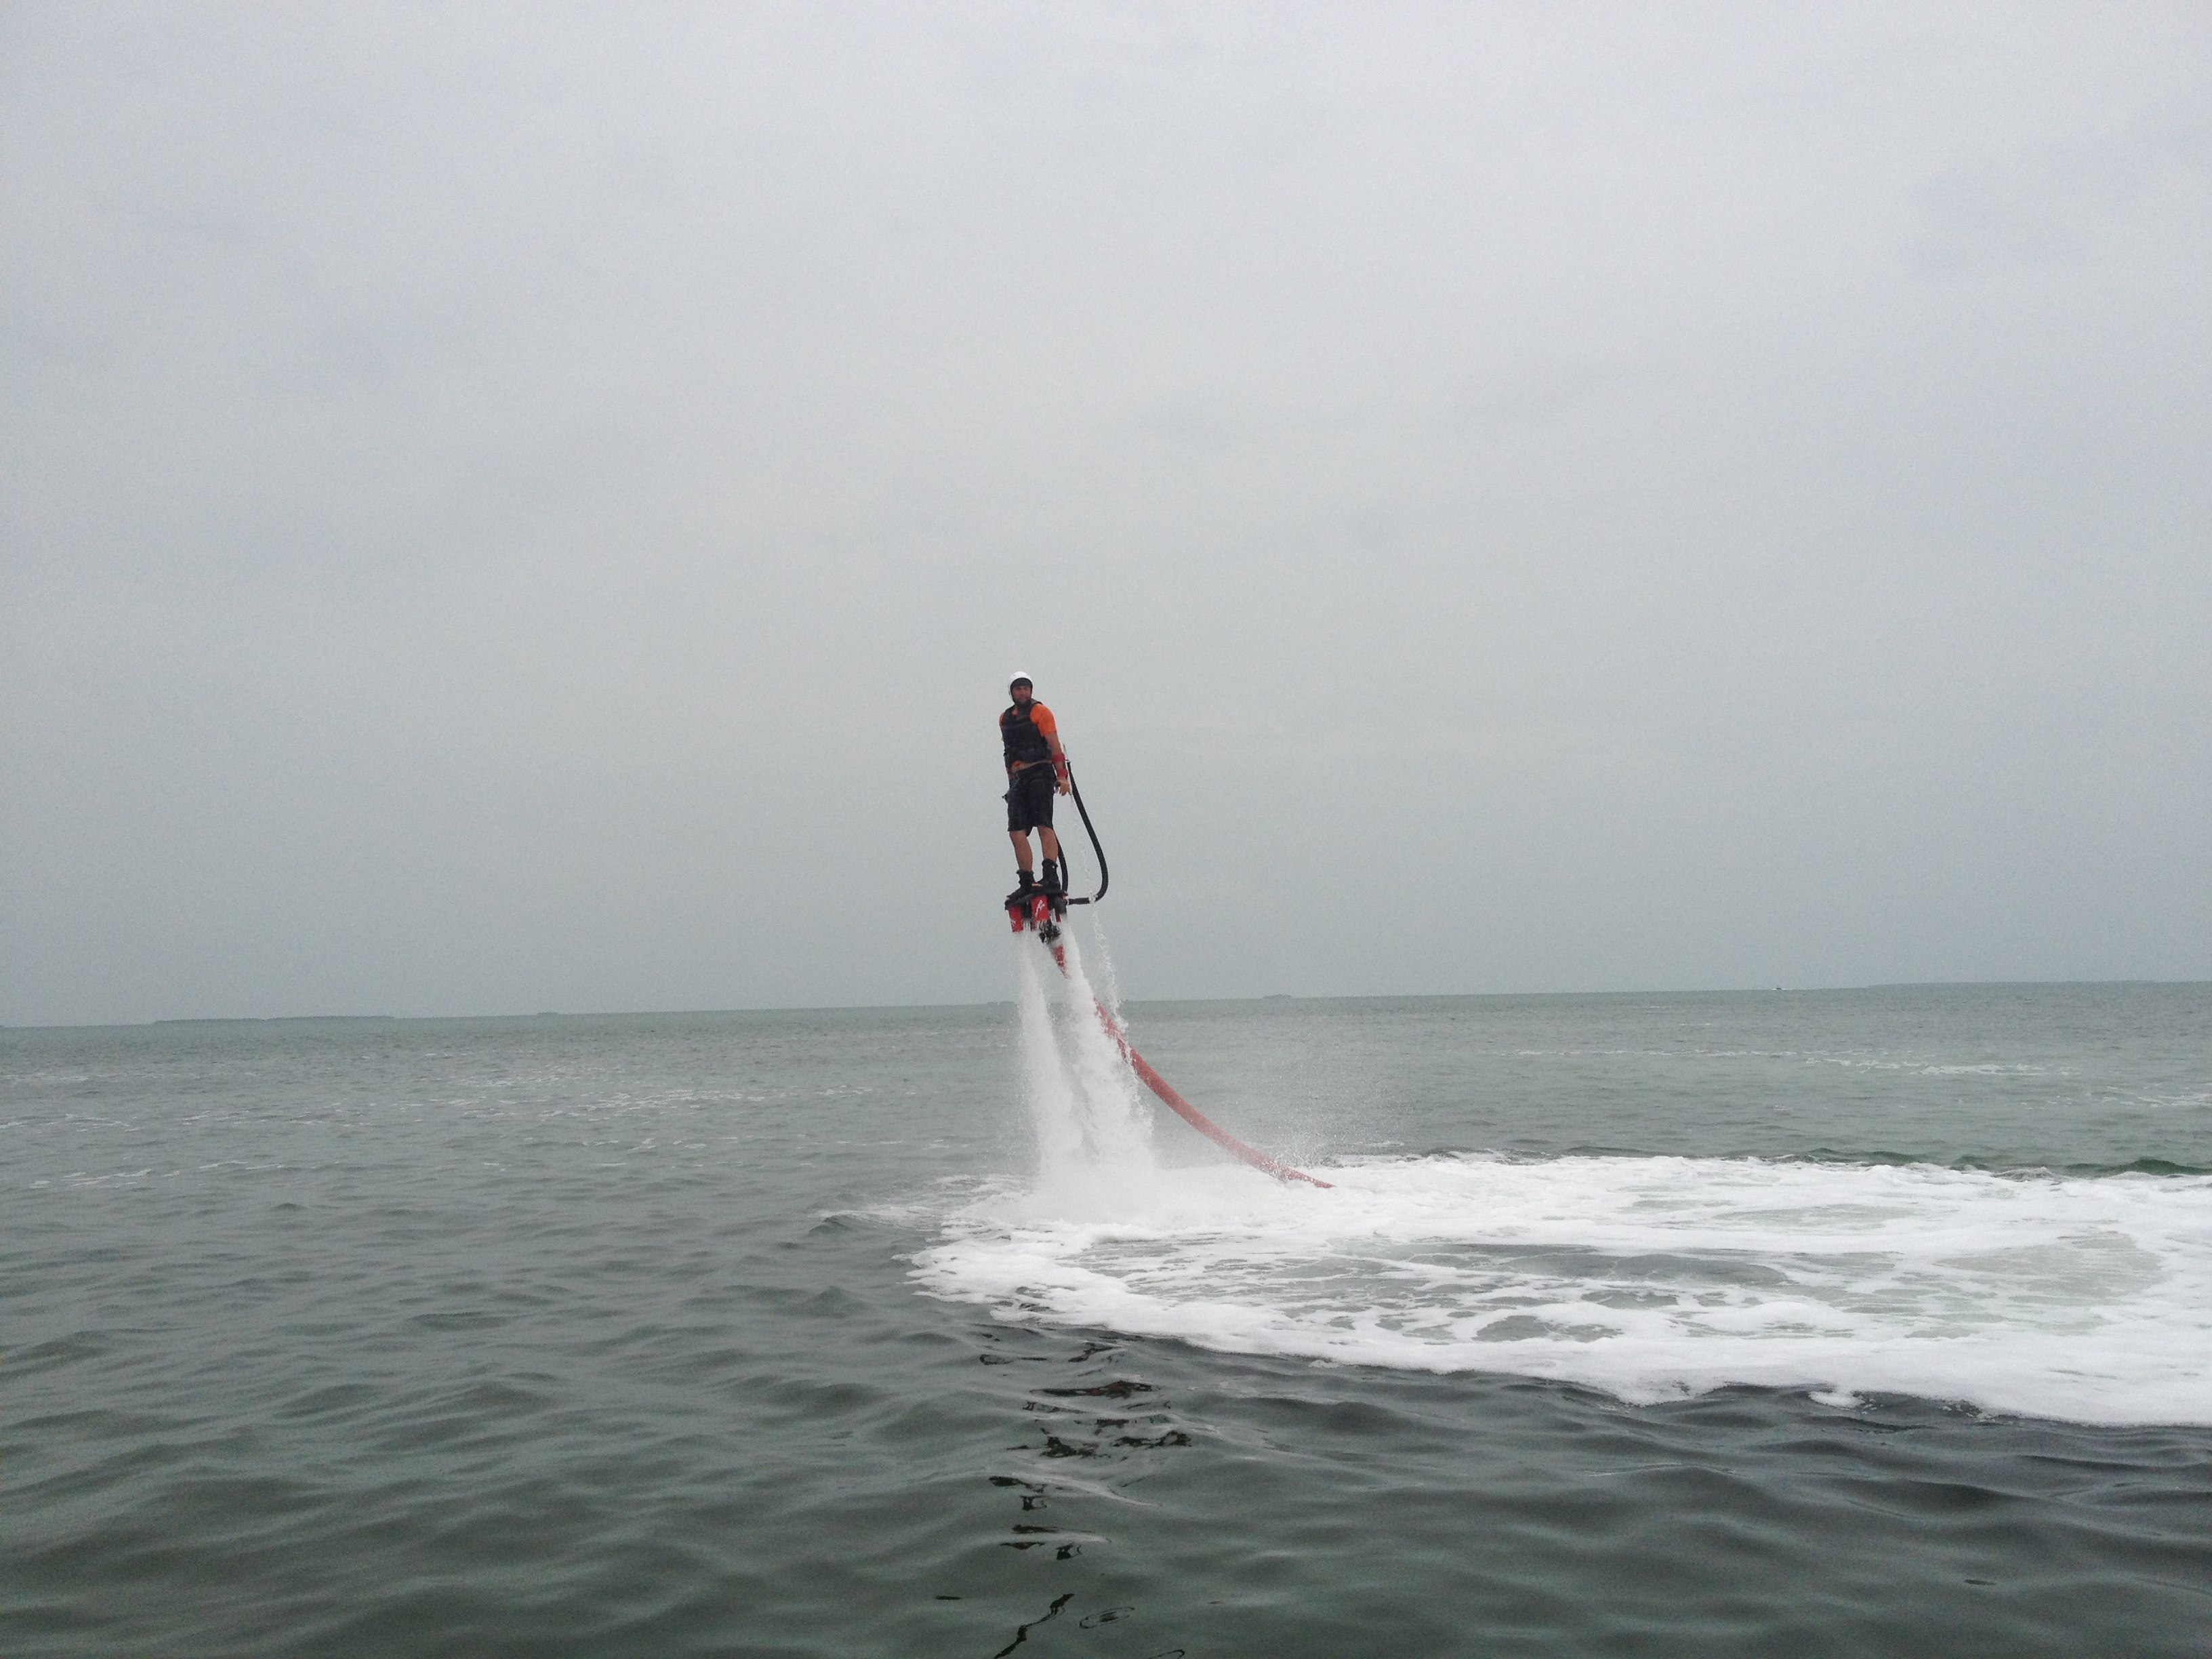 FlyBoarding with a medium hover